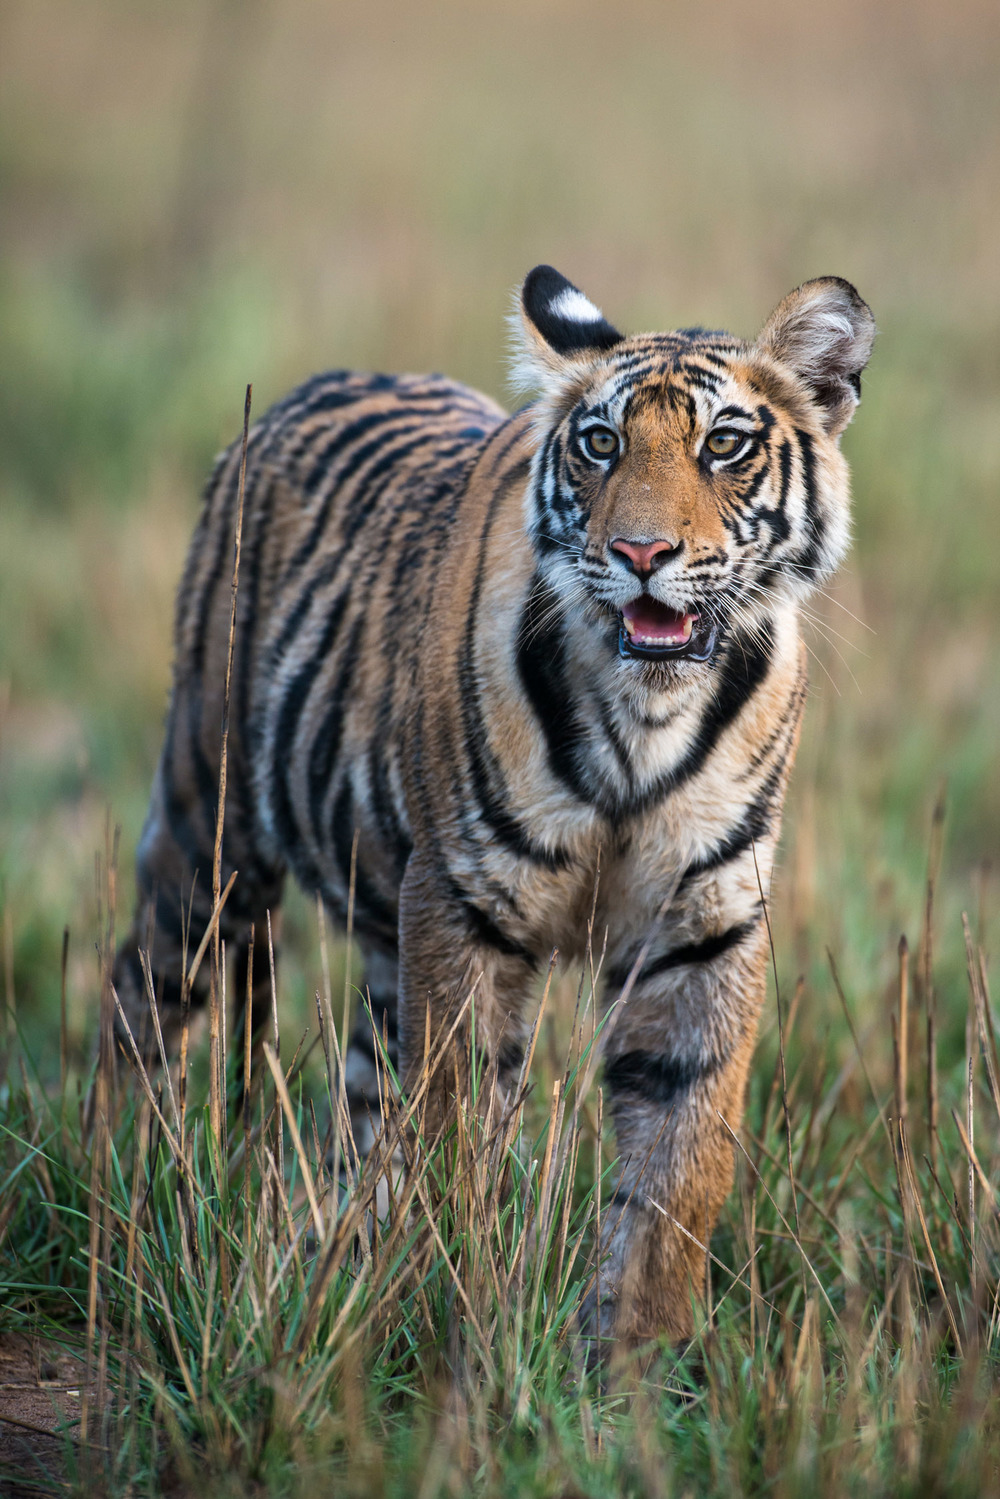 Bengal tiger cub, Bandhavgarh National Park, Madhya Pradesh, India